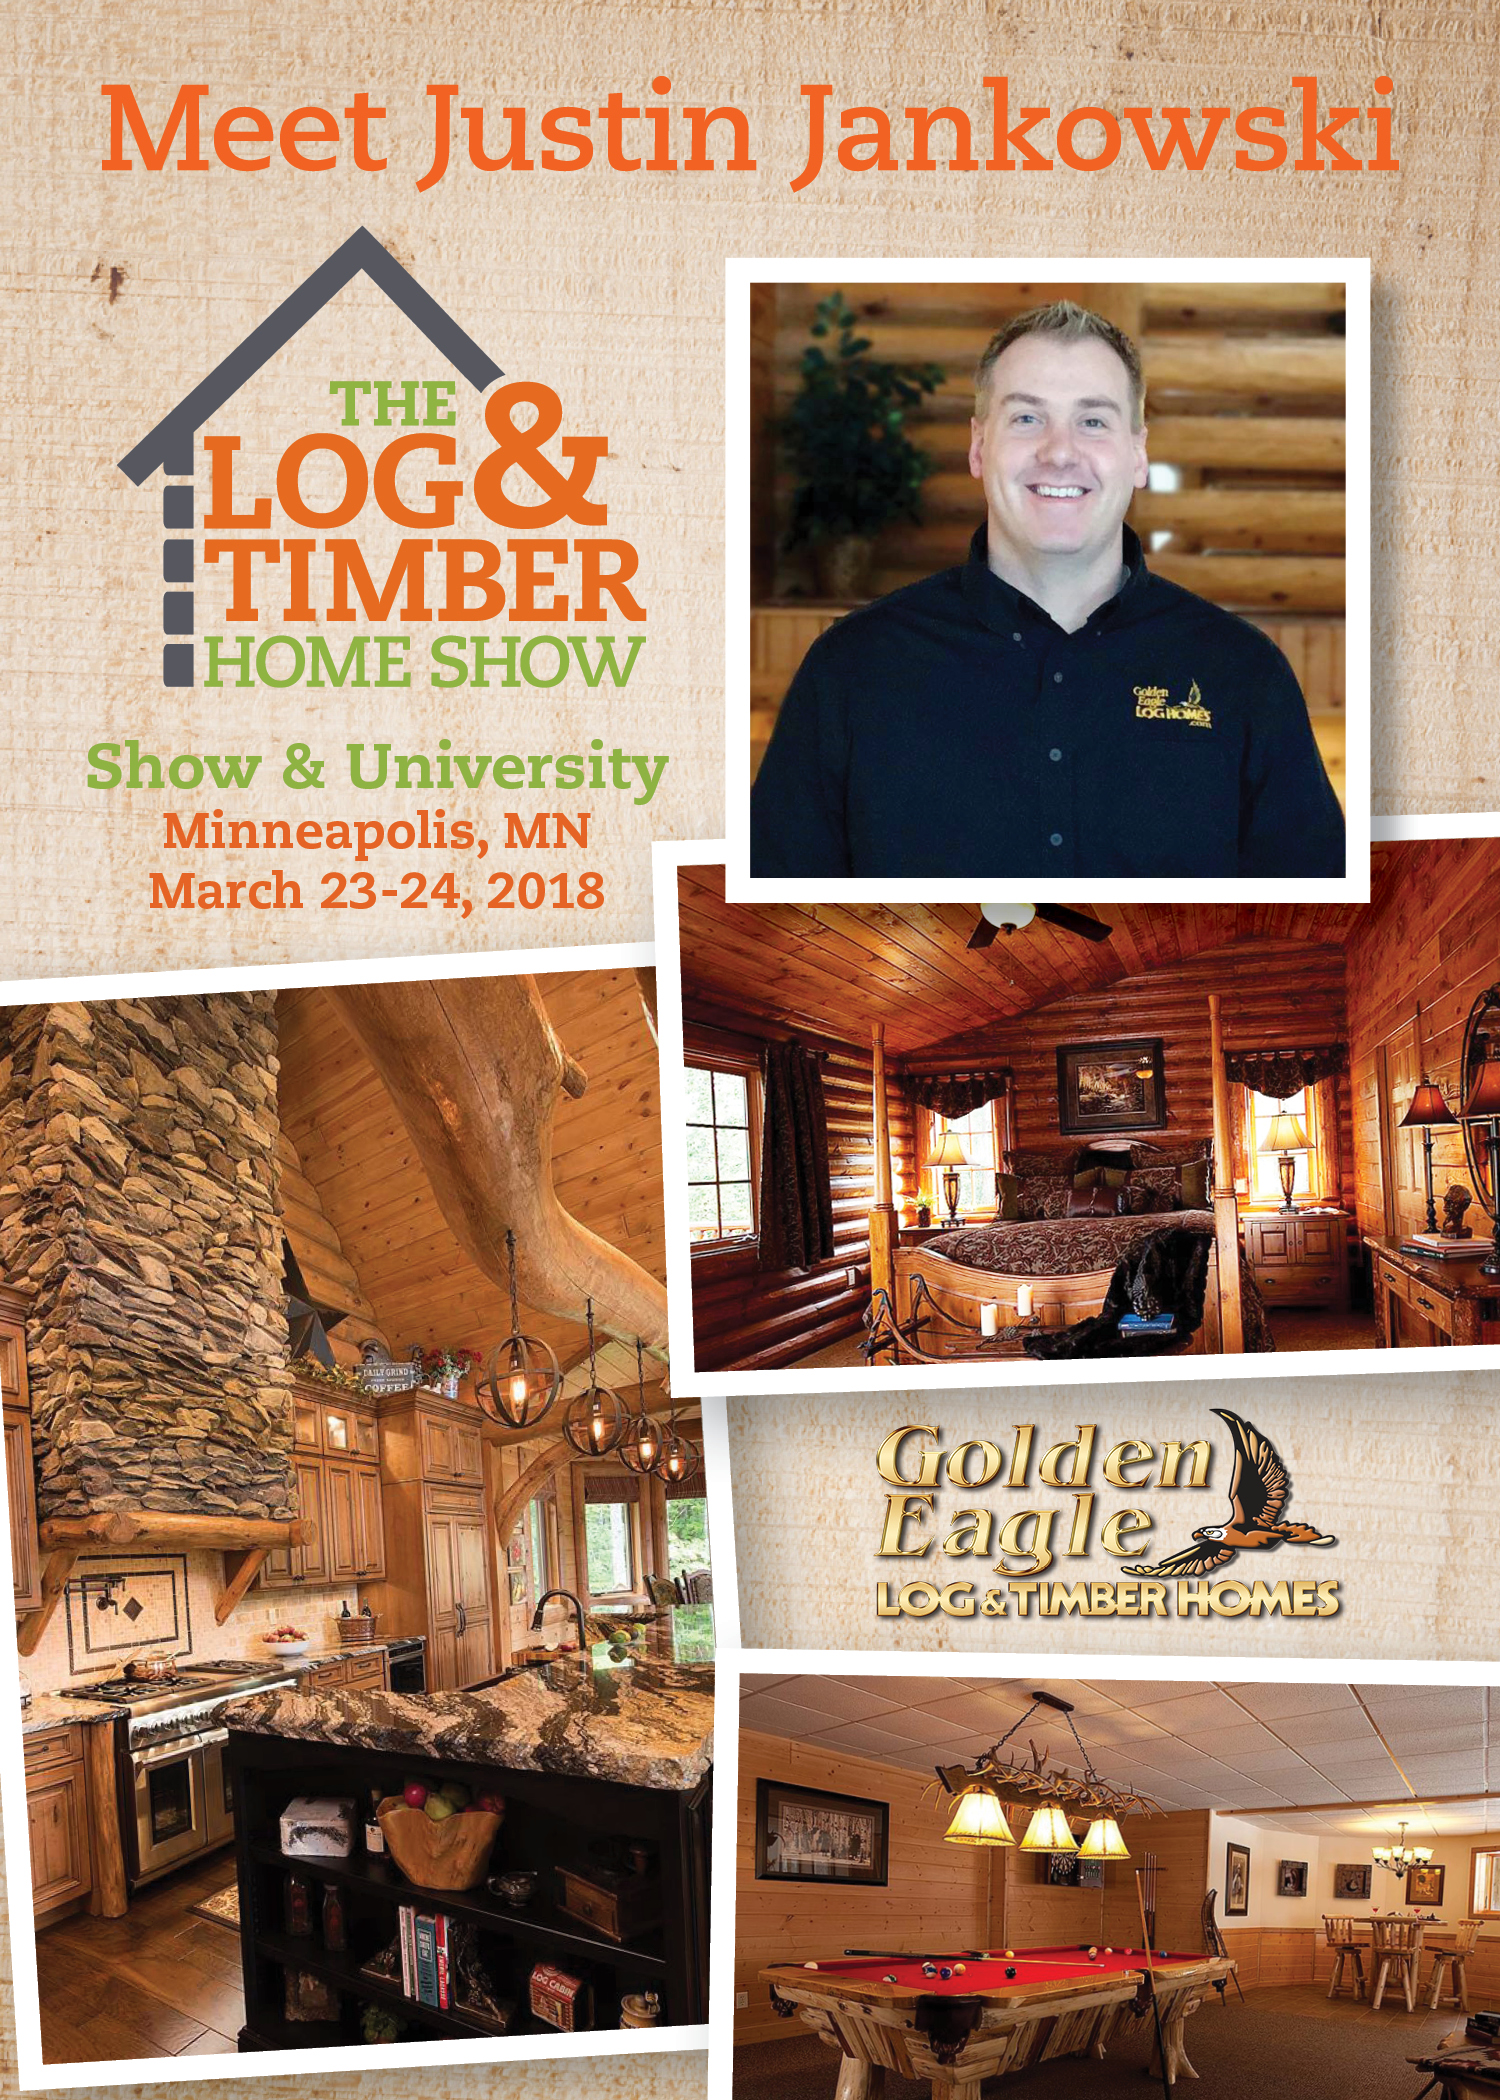 Minneapolis, MN 2018 | Workshop Spotlight | Golden Eagle Log Homes | March 23-24, 2017 | The Log & Timber Home Show